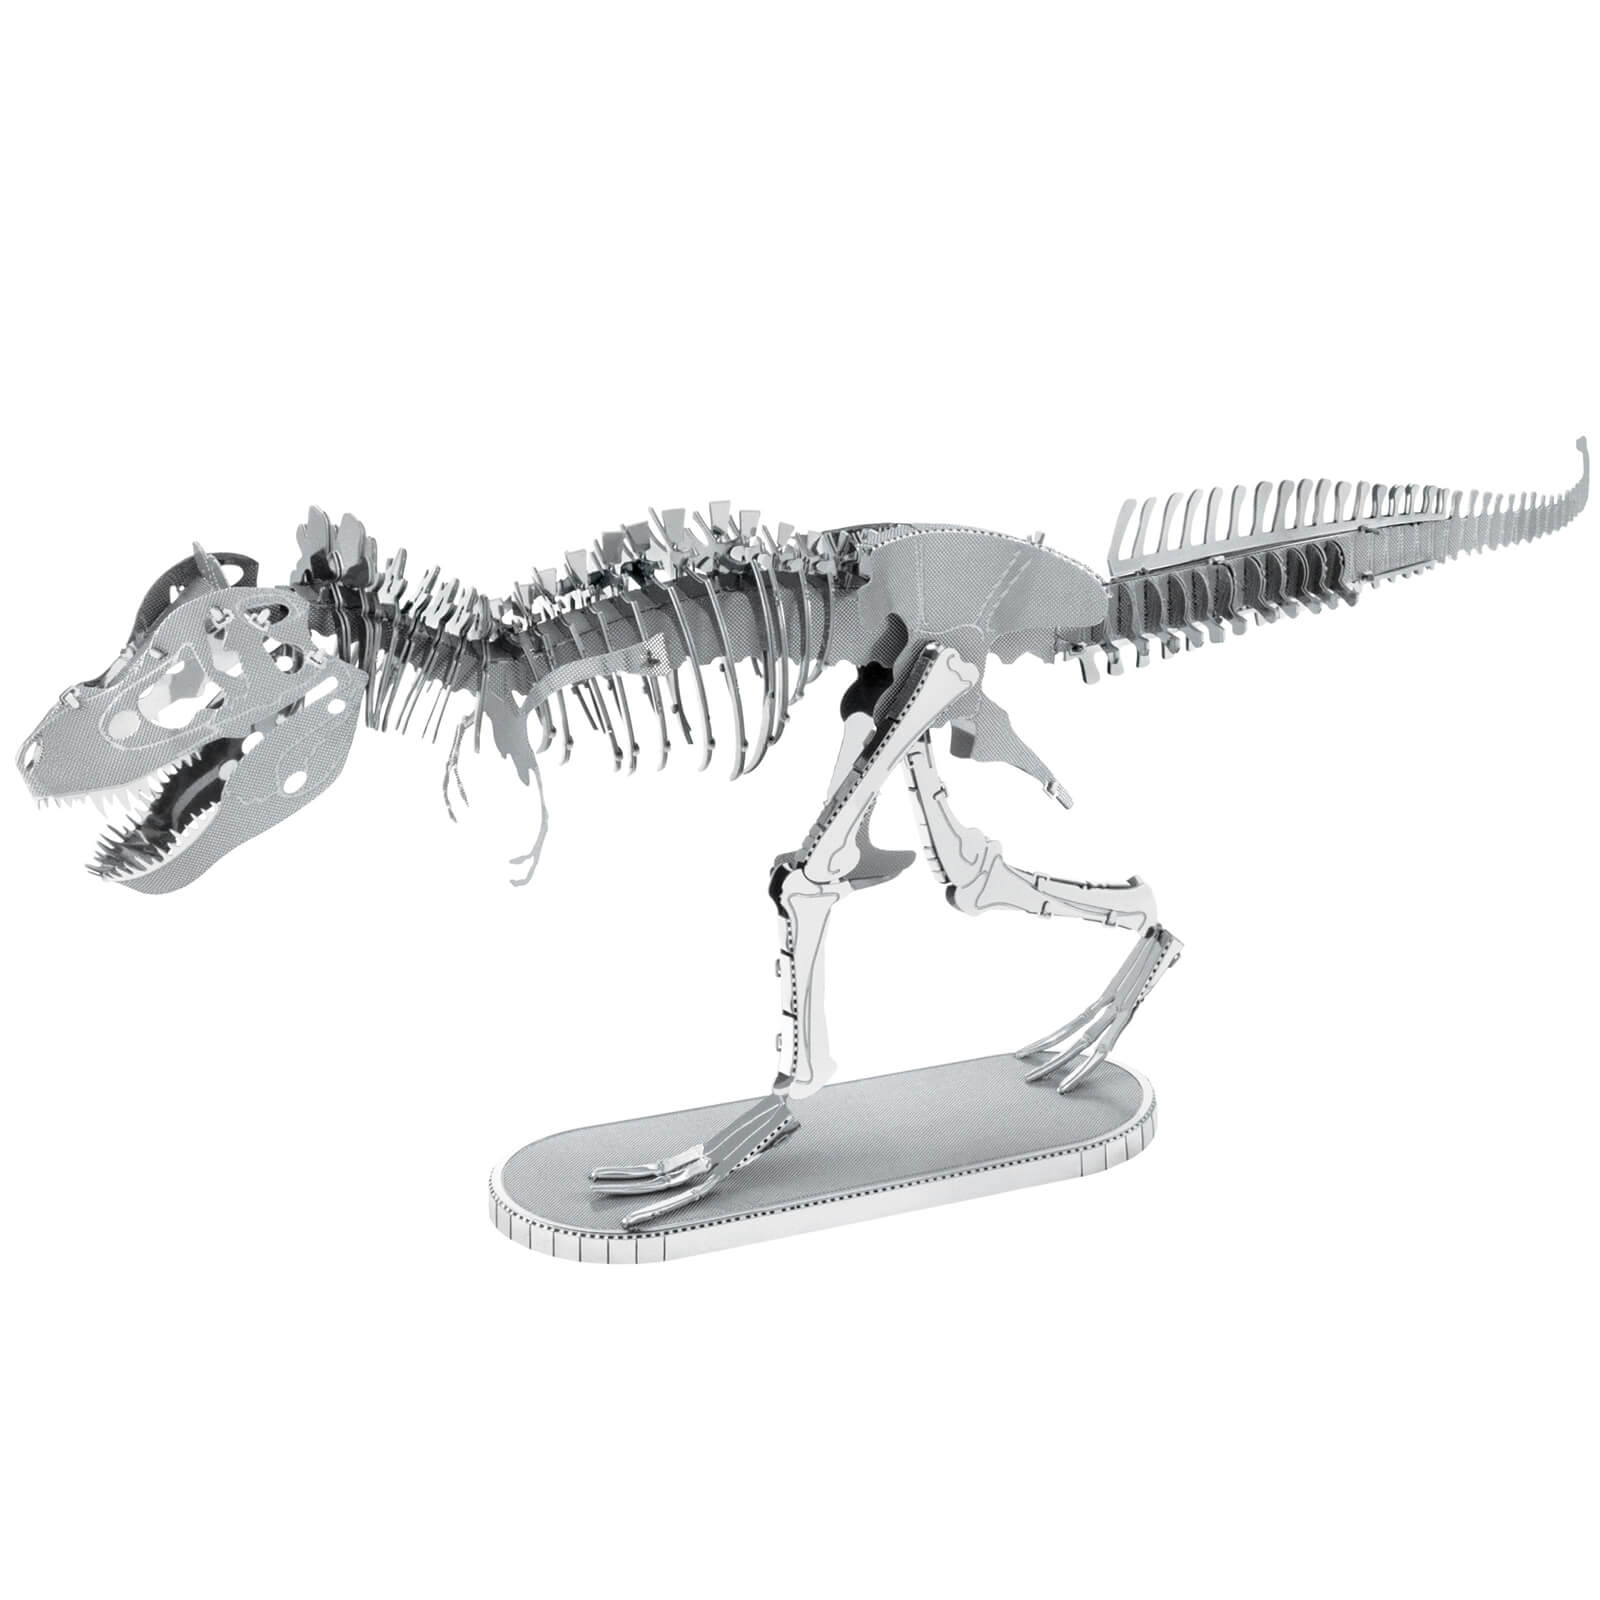 Metal Earth Dinosaurs - T-Rex Construction Kit